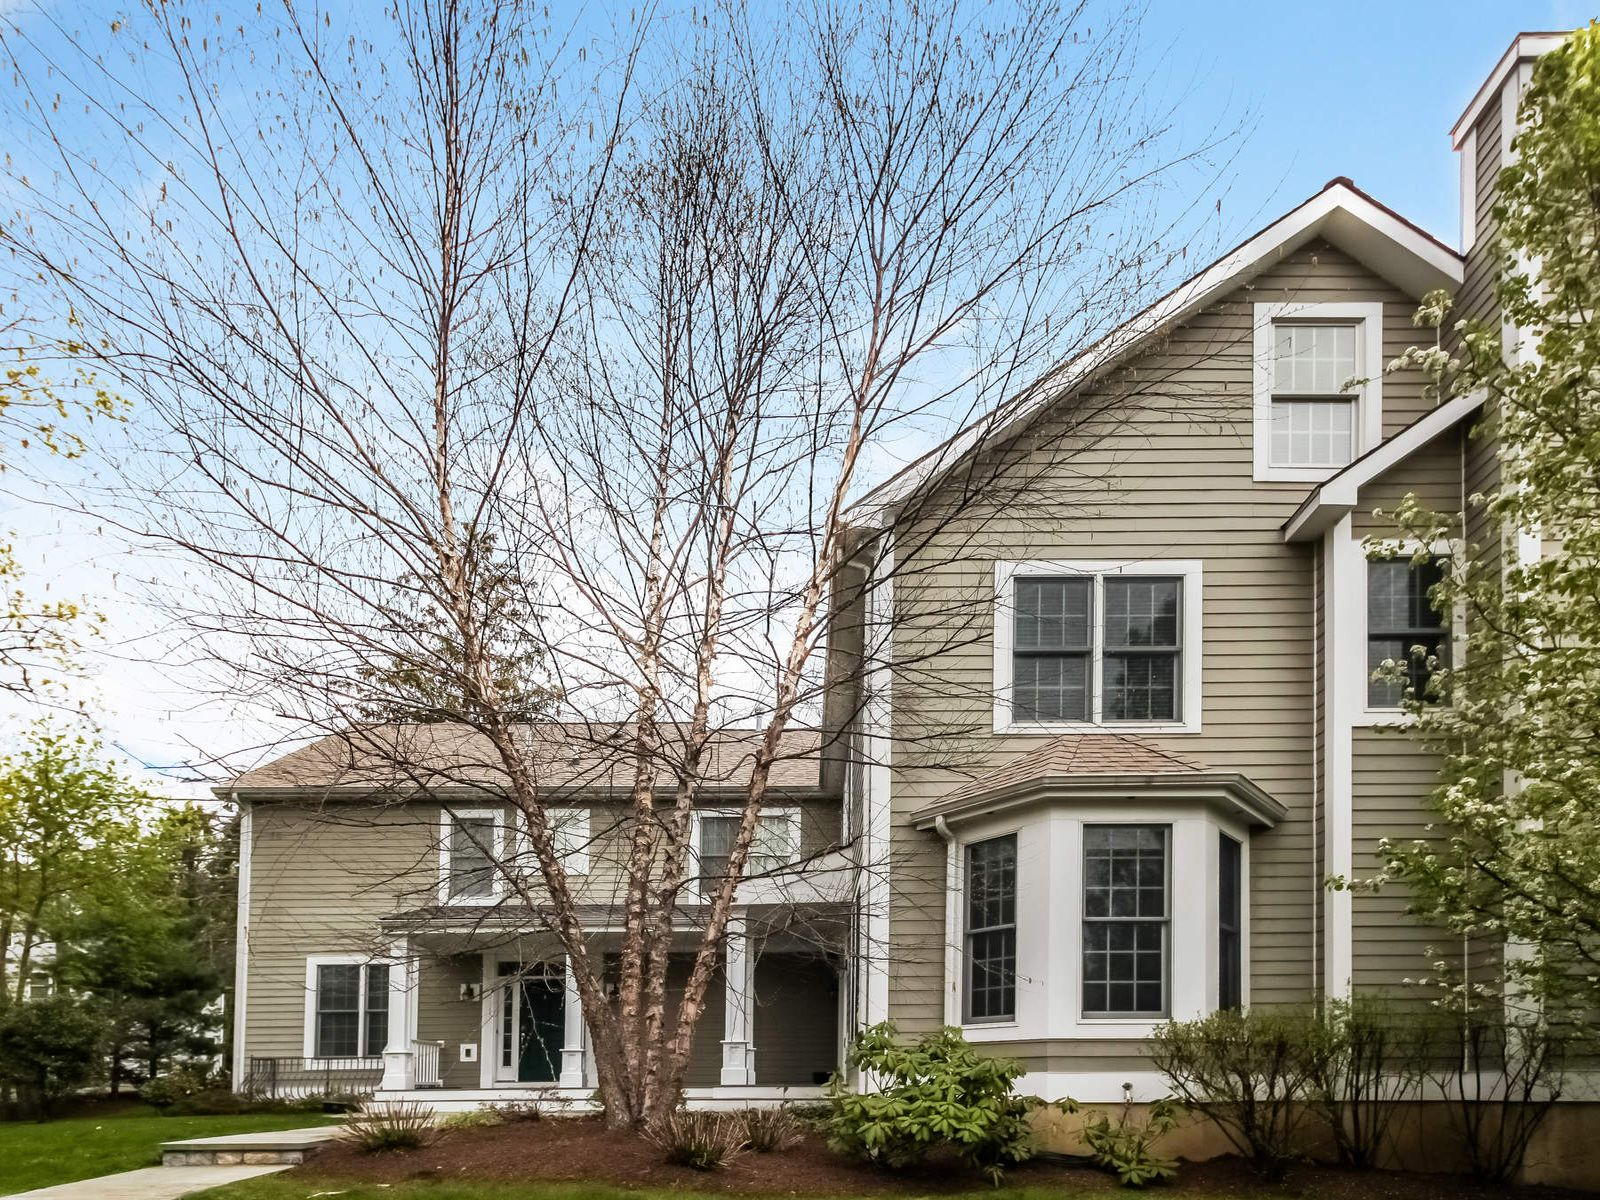 Cos Cob Investment Property, Cos Cob CT Multi-Family - Greenwich Real Estate